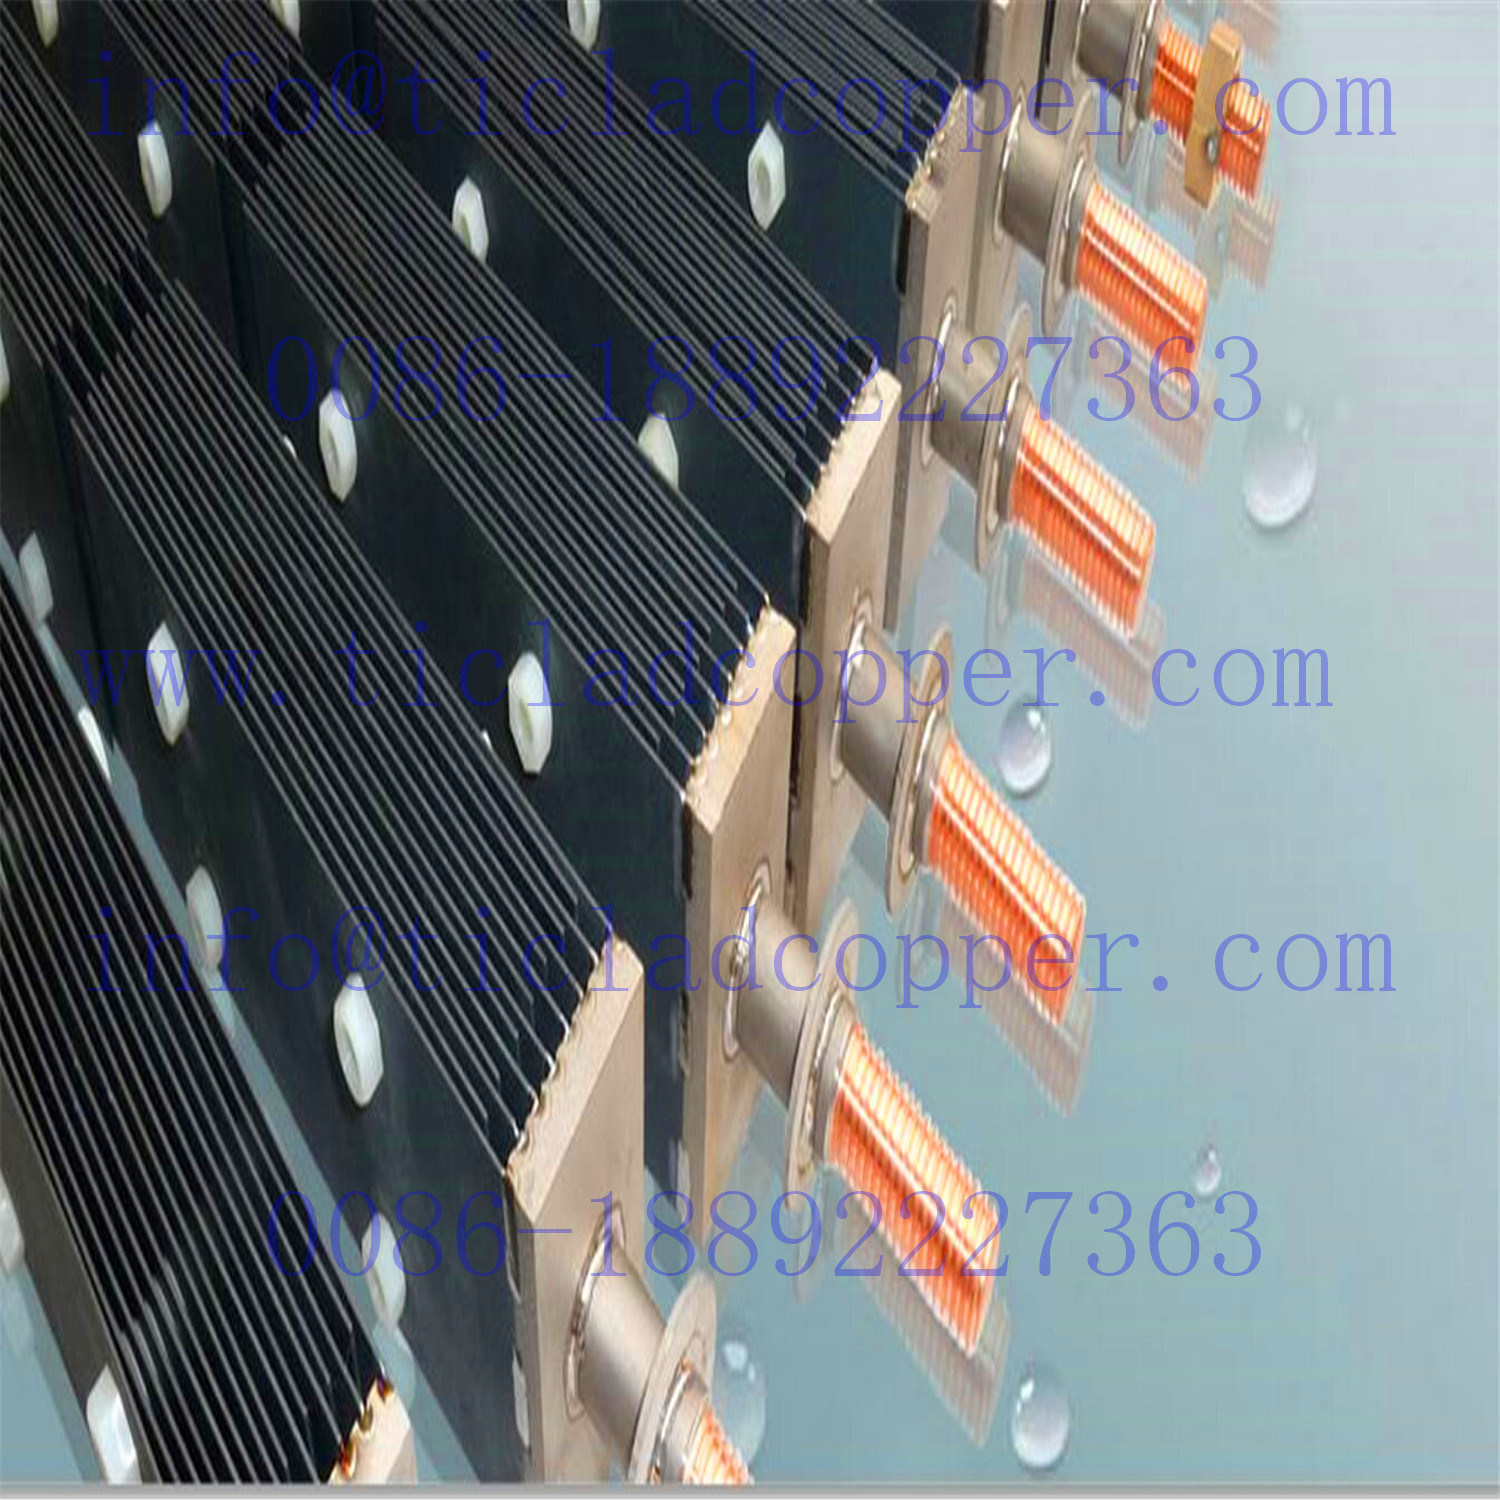 Active Coating Titanium Anodes for Electrolysis pictures & photos